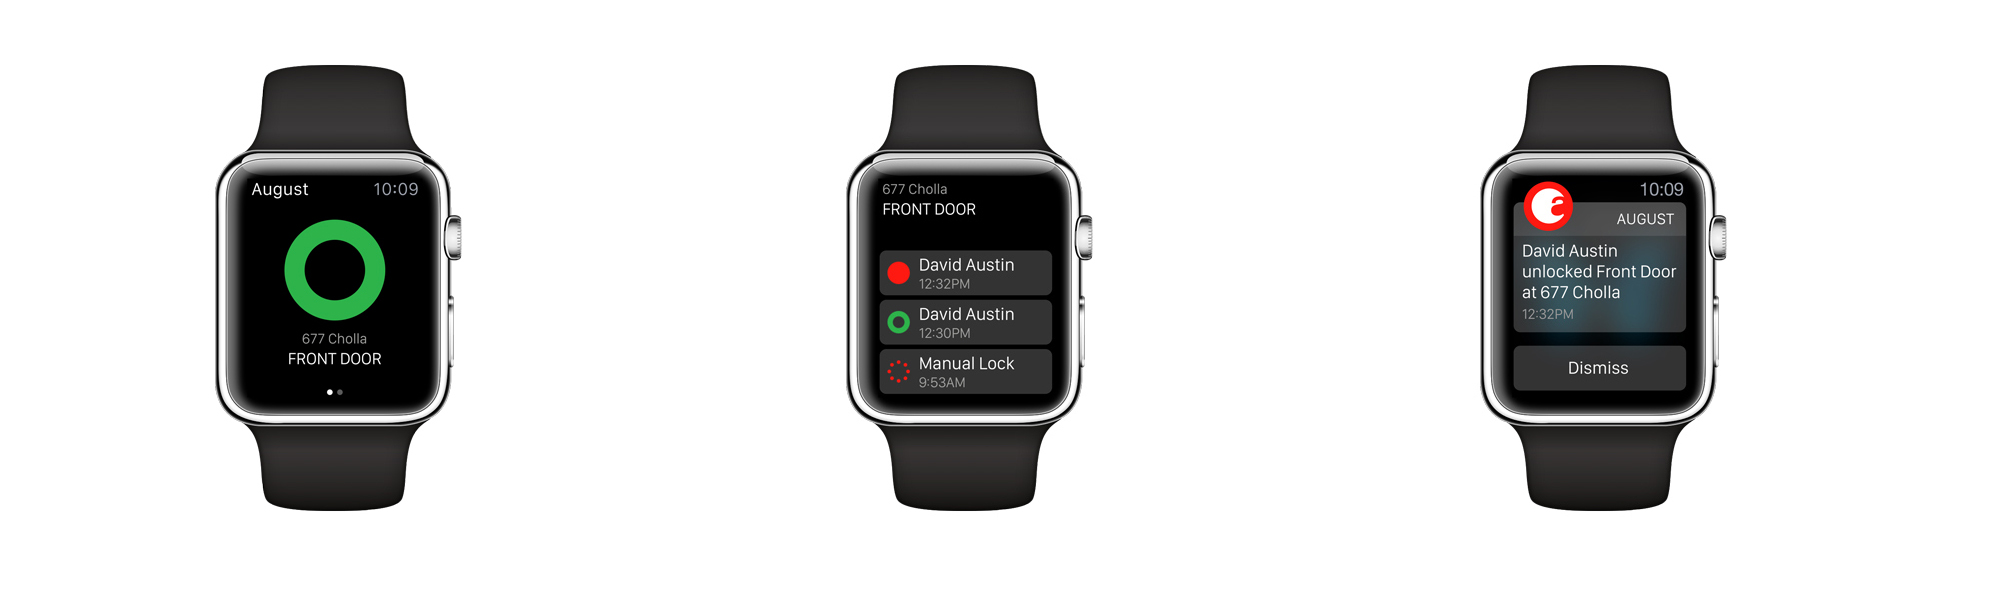 You can now operate an August Smart Lock from the Apple Watch